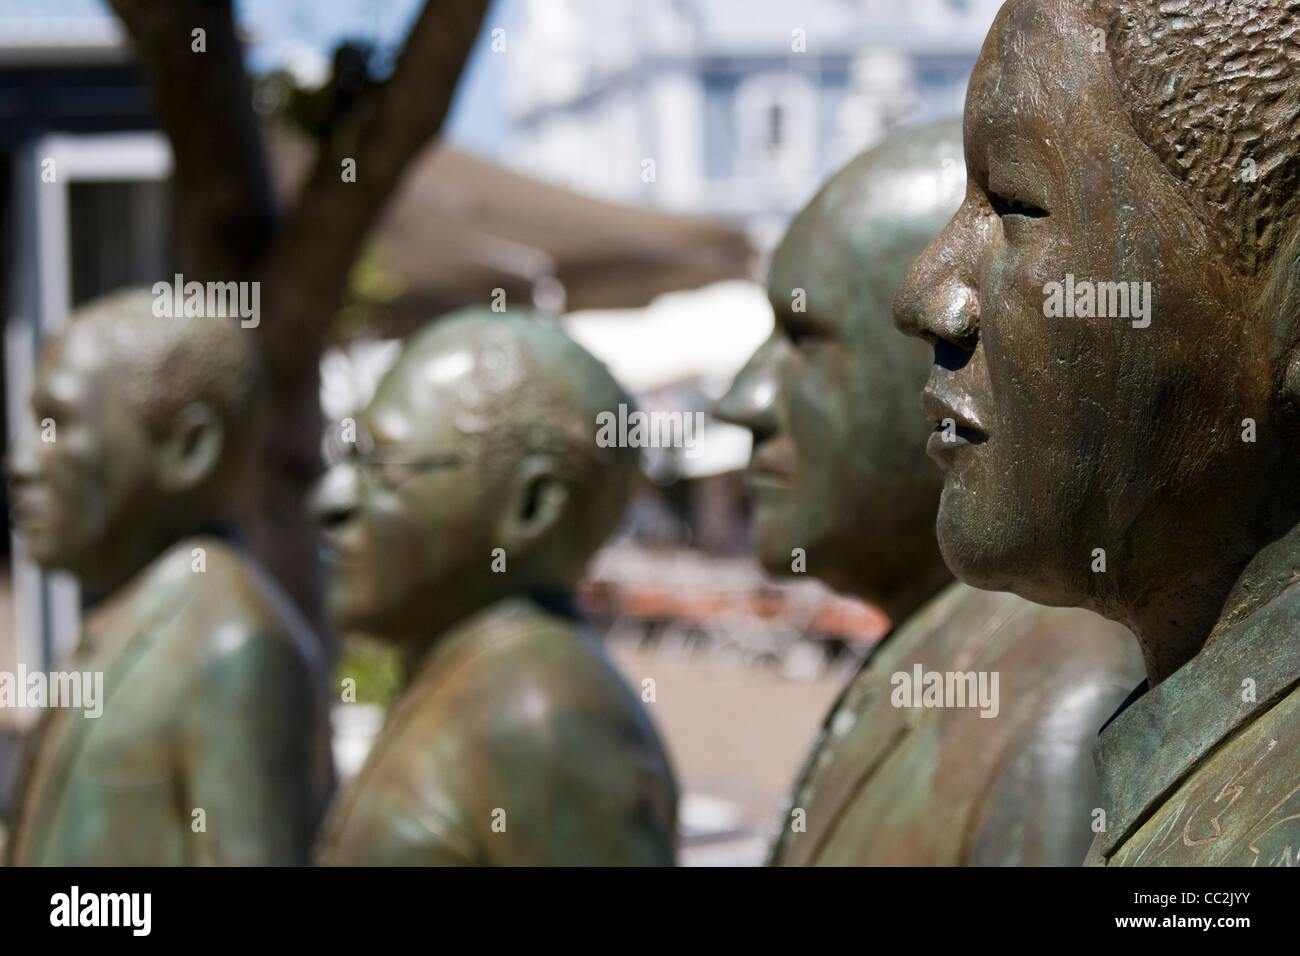 A statue in Cape Town of Nelson Mandela and other public figures - Stock Image